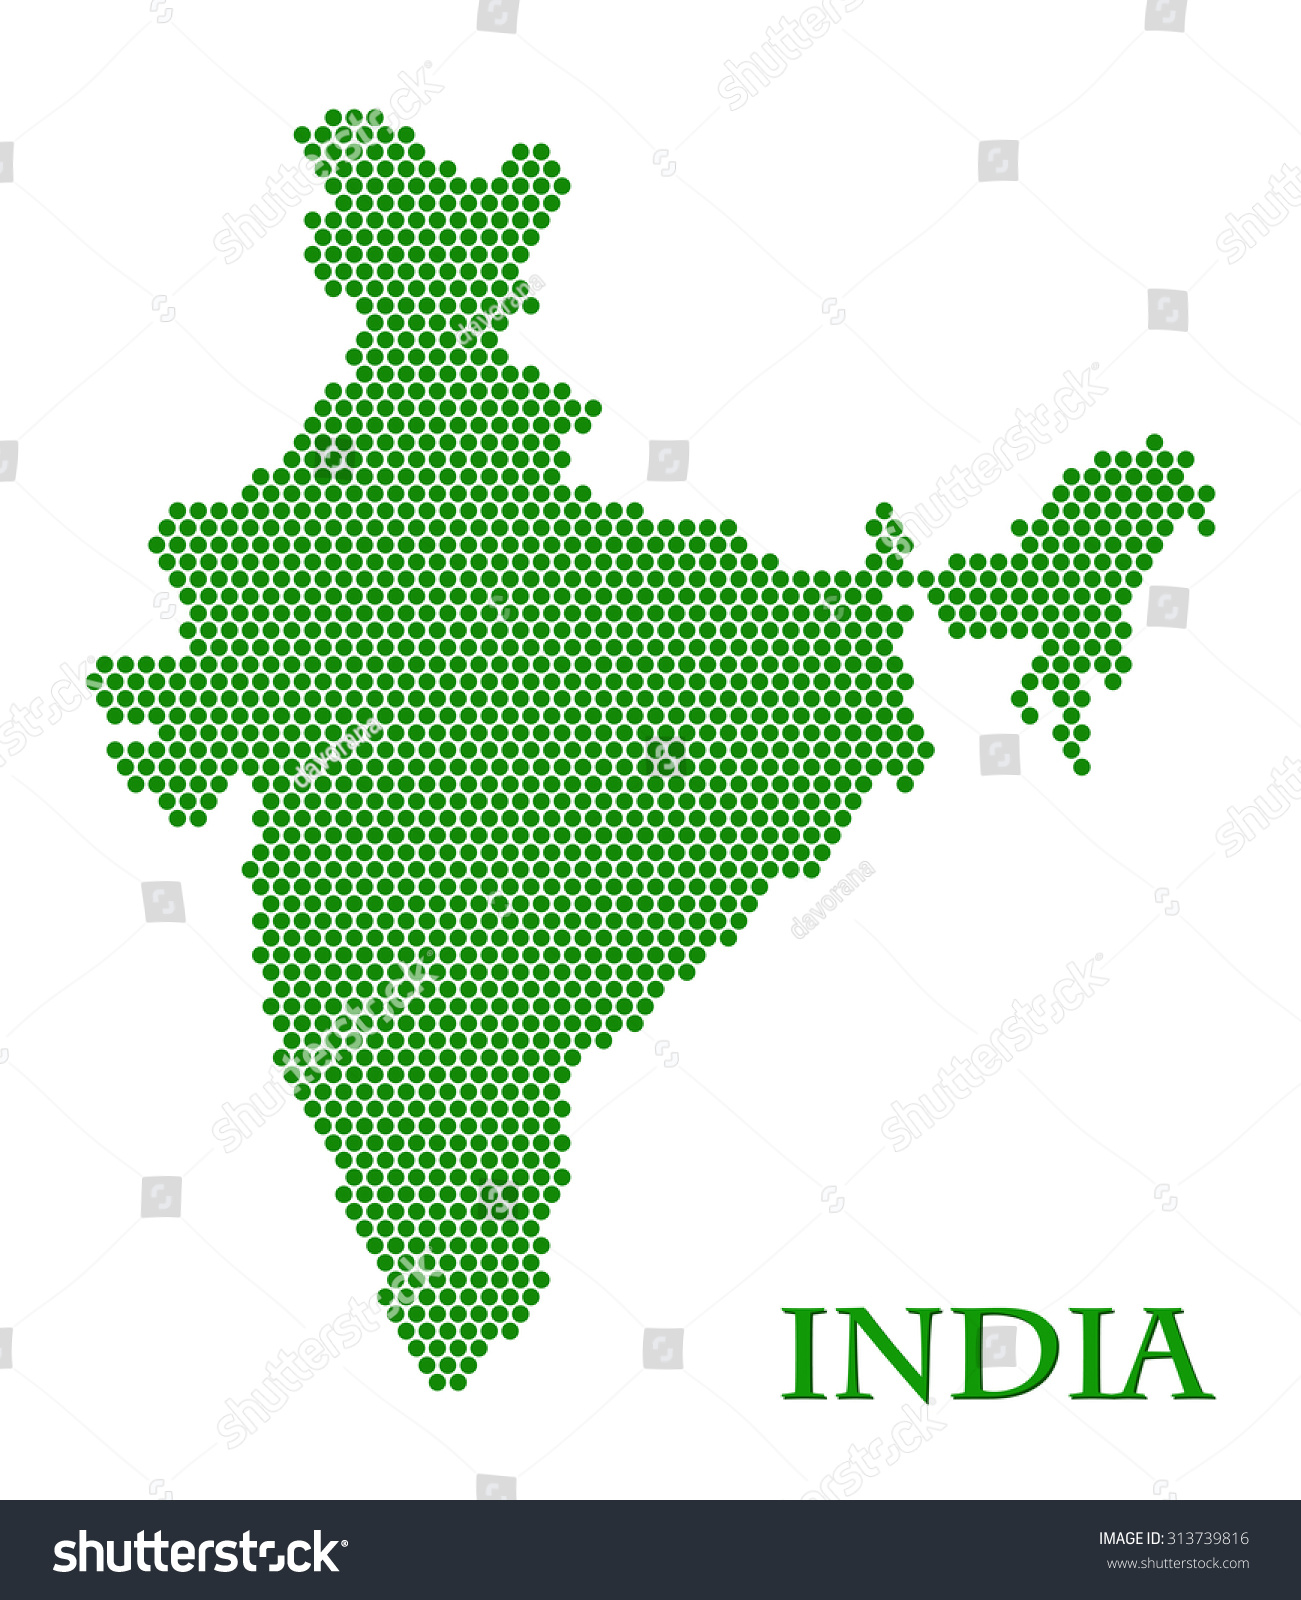 India Country Shape